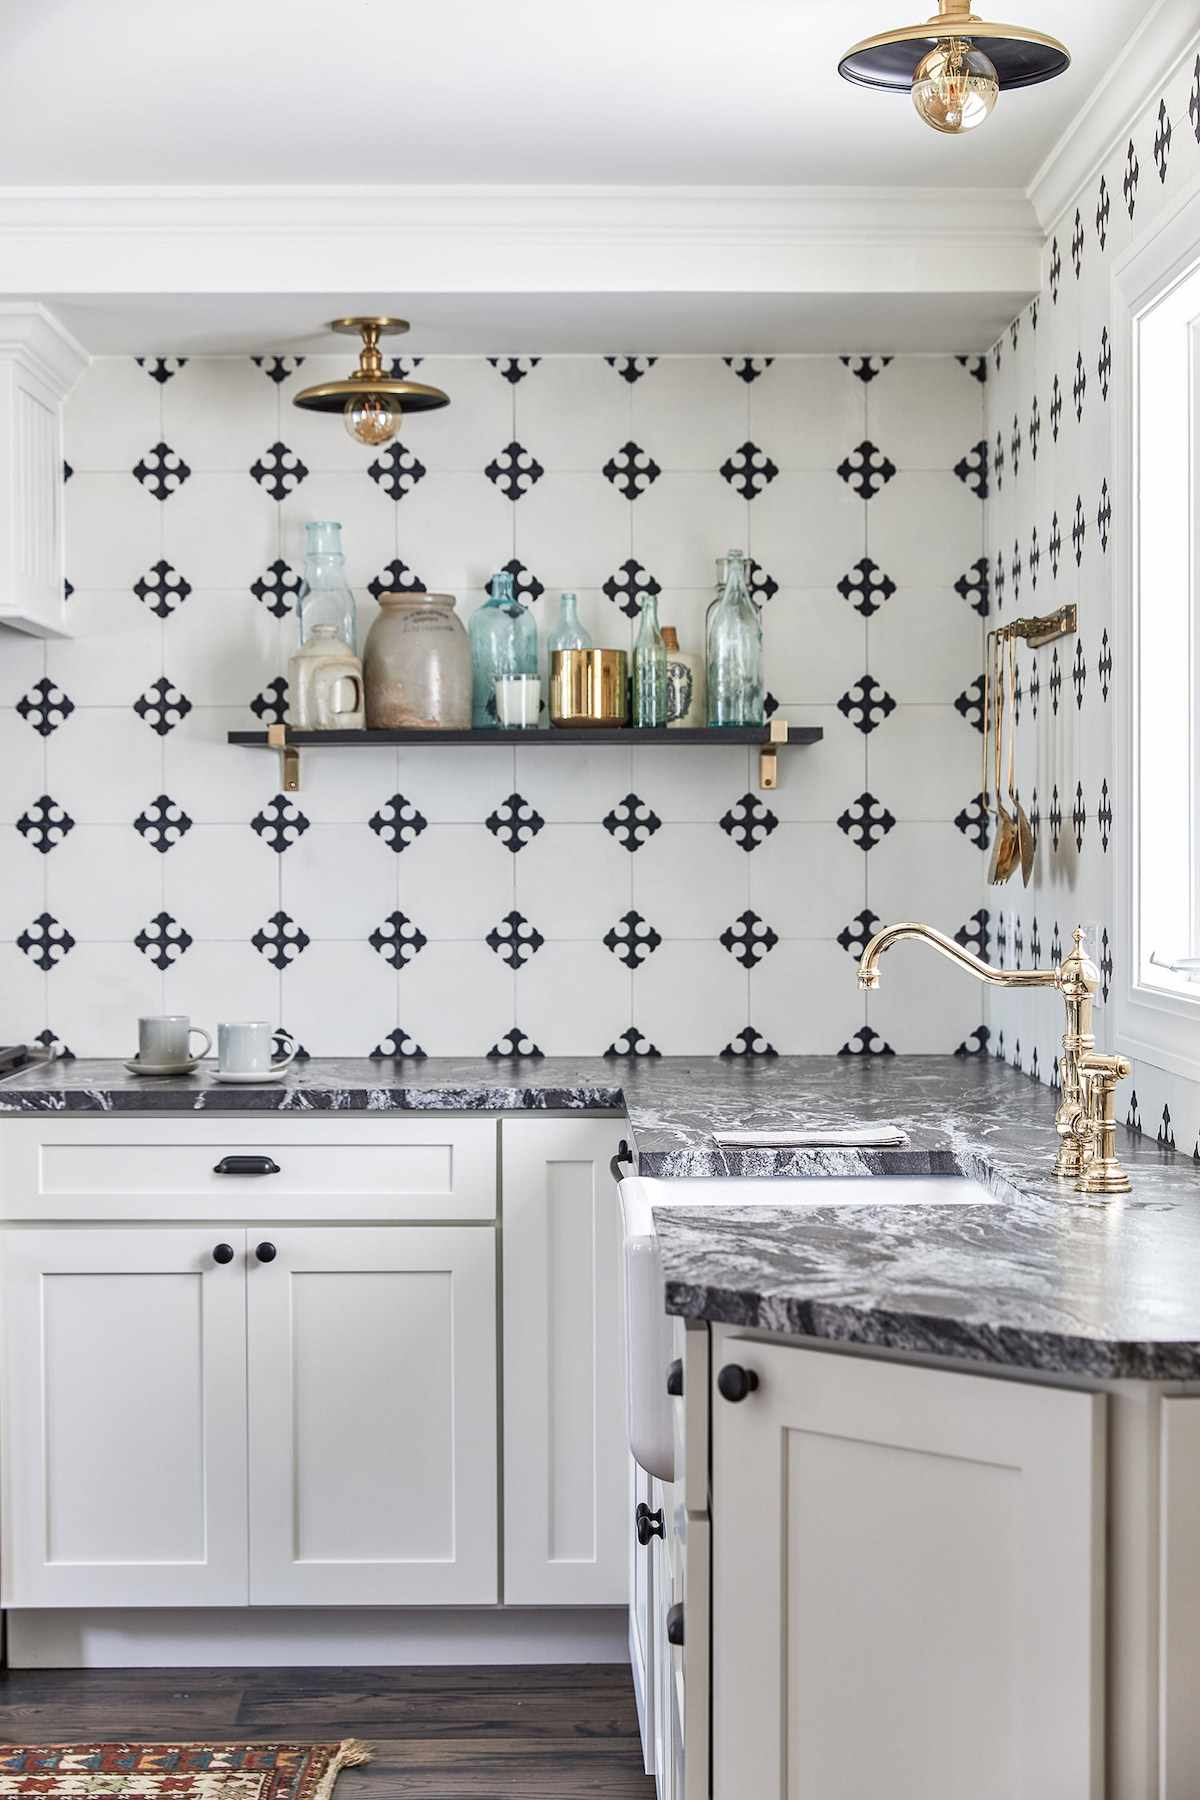 A kitchen with striated marble countertops and a bold backsplash crafted from black and white tiles